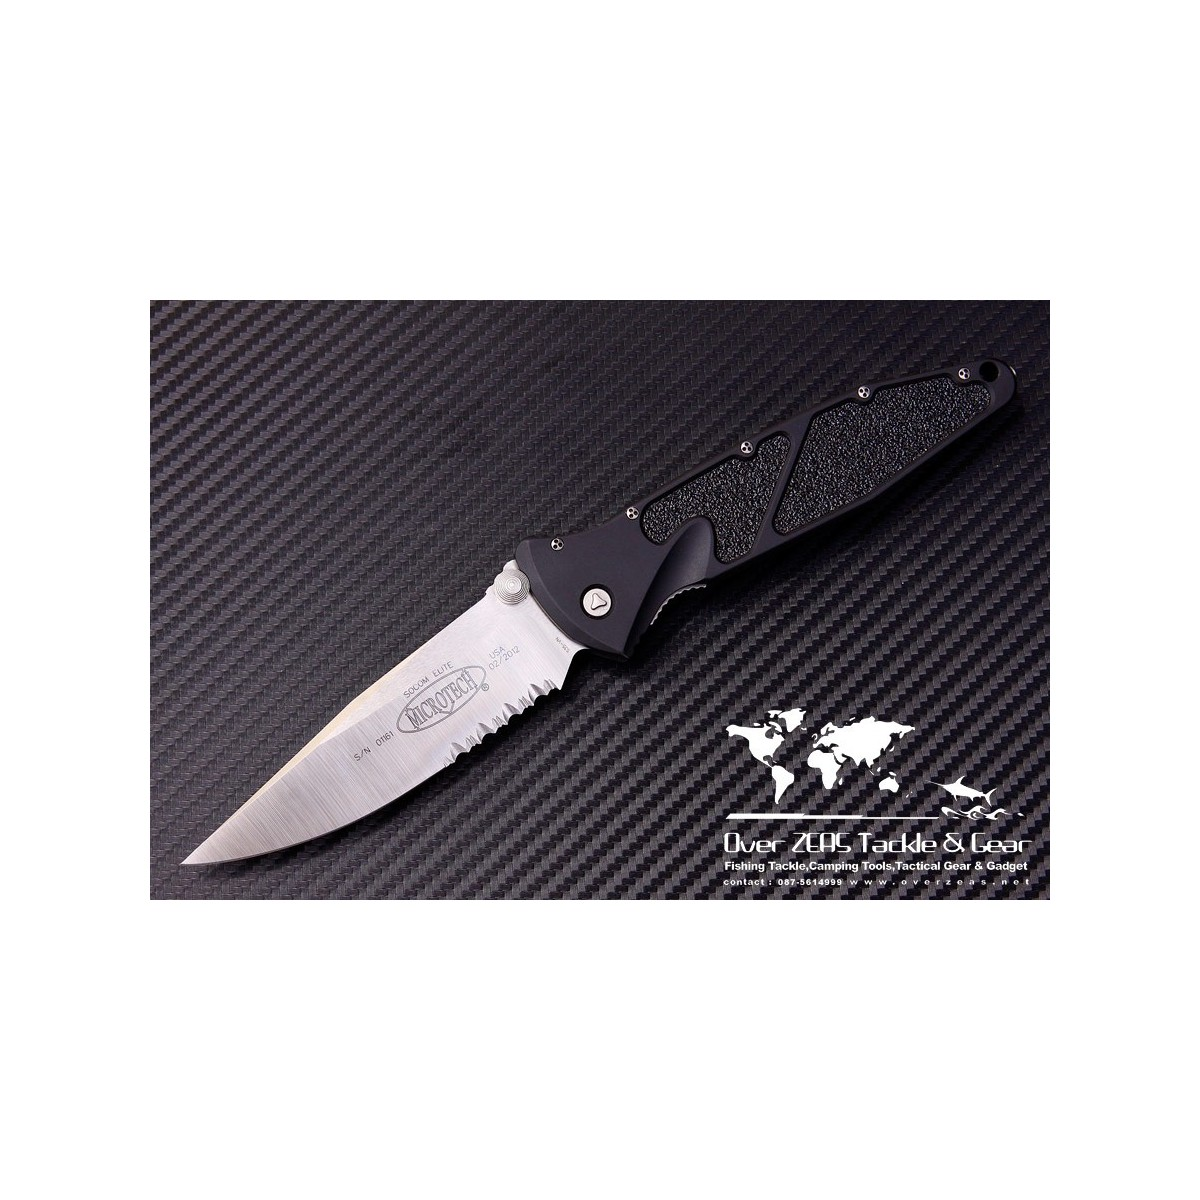 "มีดพับ Microtech Socom Elite M/A Folding Knife (4"" Satin Serr) 160-5"